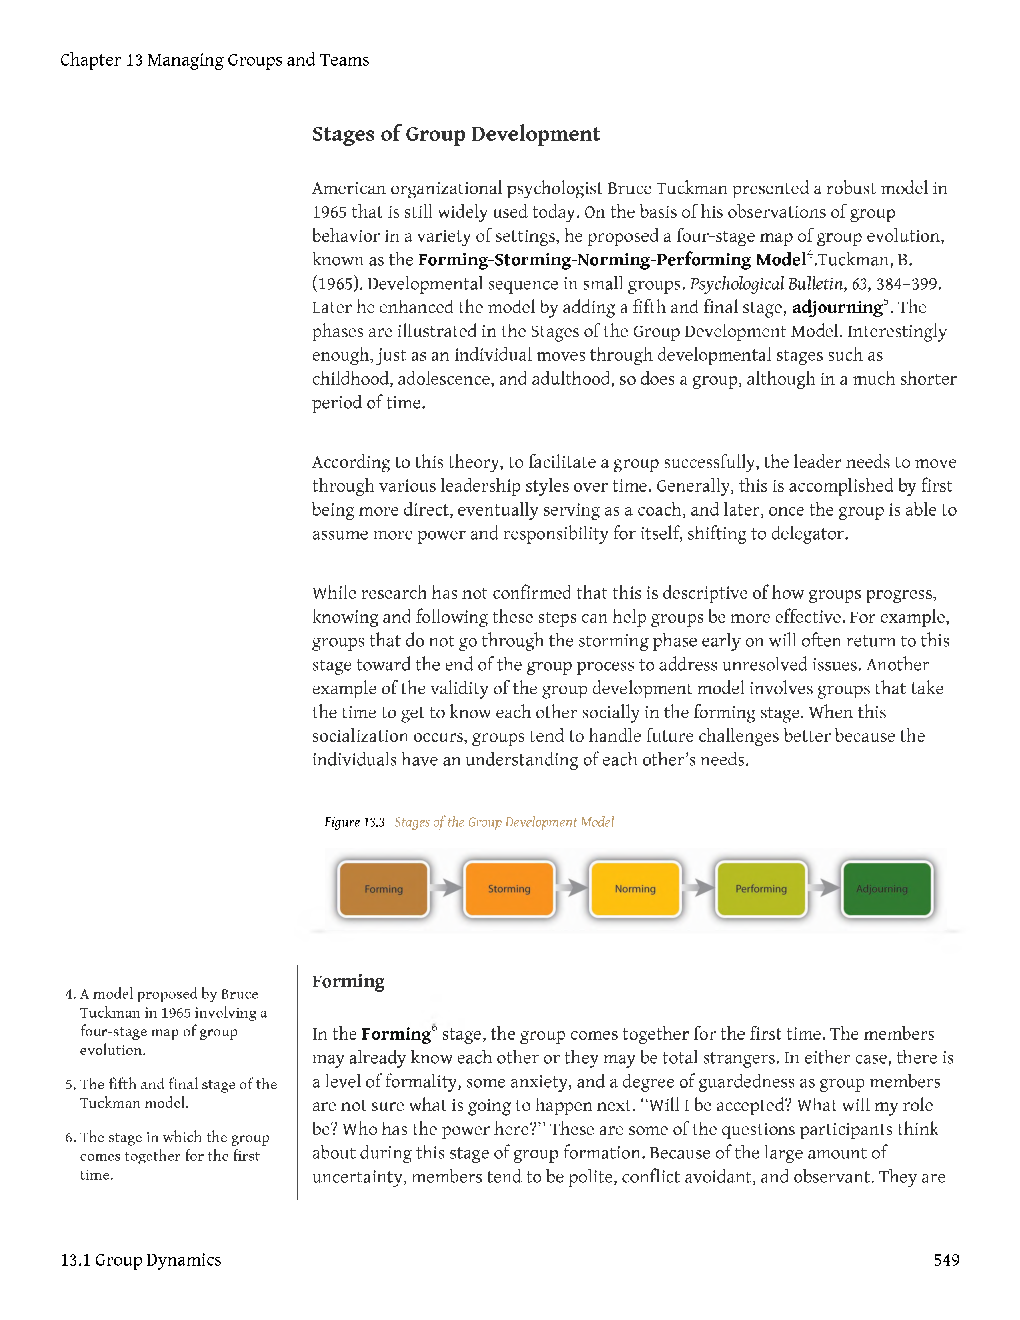 UGC NET Managing Groups And Teams Study Material For Management - Page 5